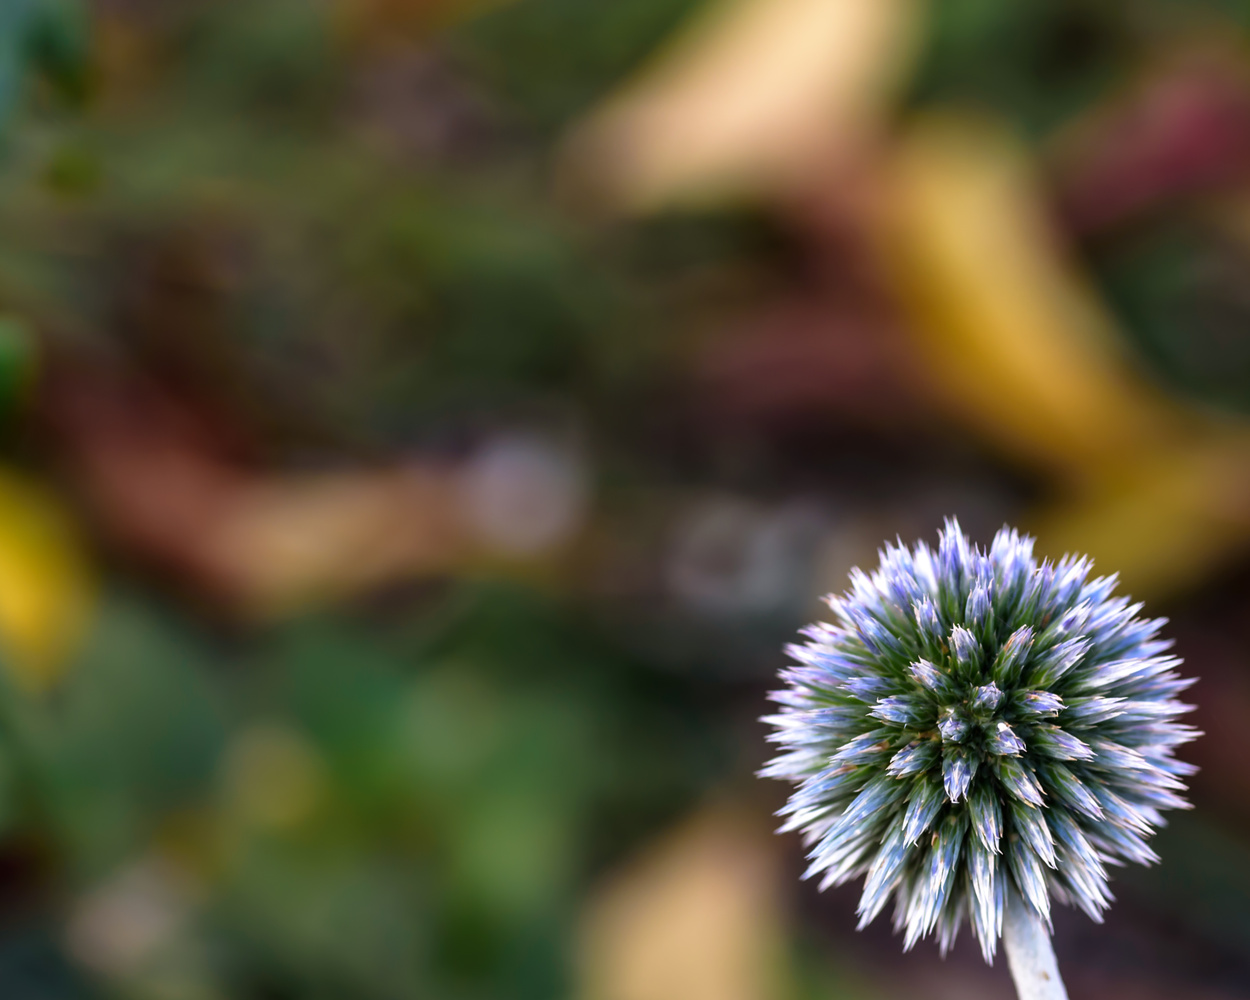 Flower Head and Bokeh by Kevin Drury